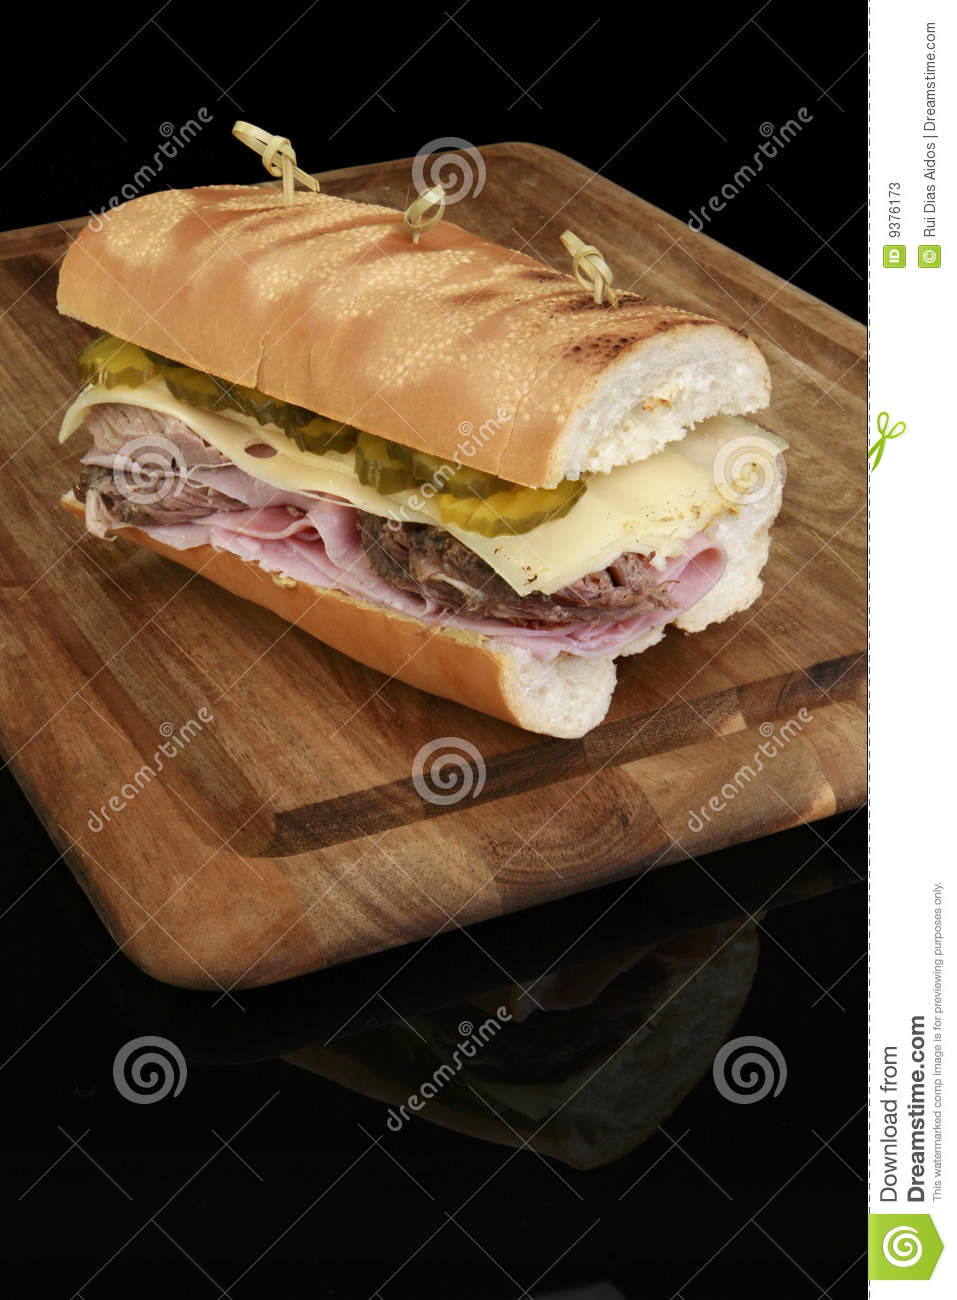 More similar stock images of ` Grilled Cuban sandwich `